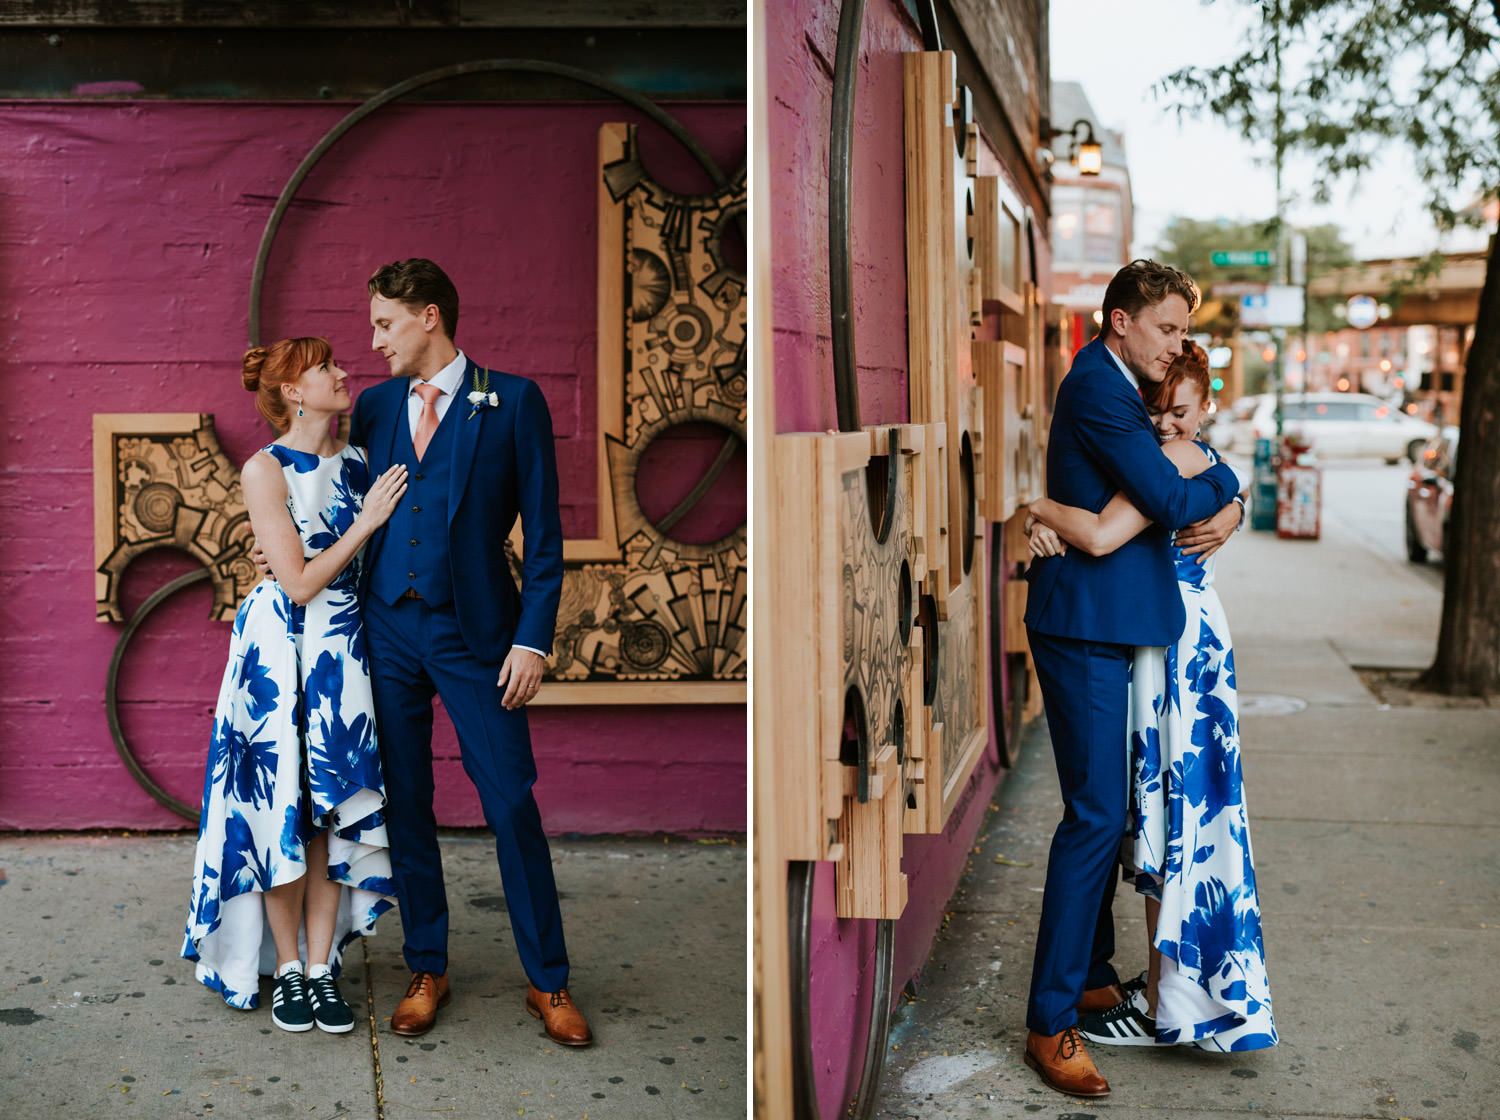 bride and groom exploring wicker park during the wedding day